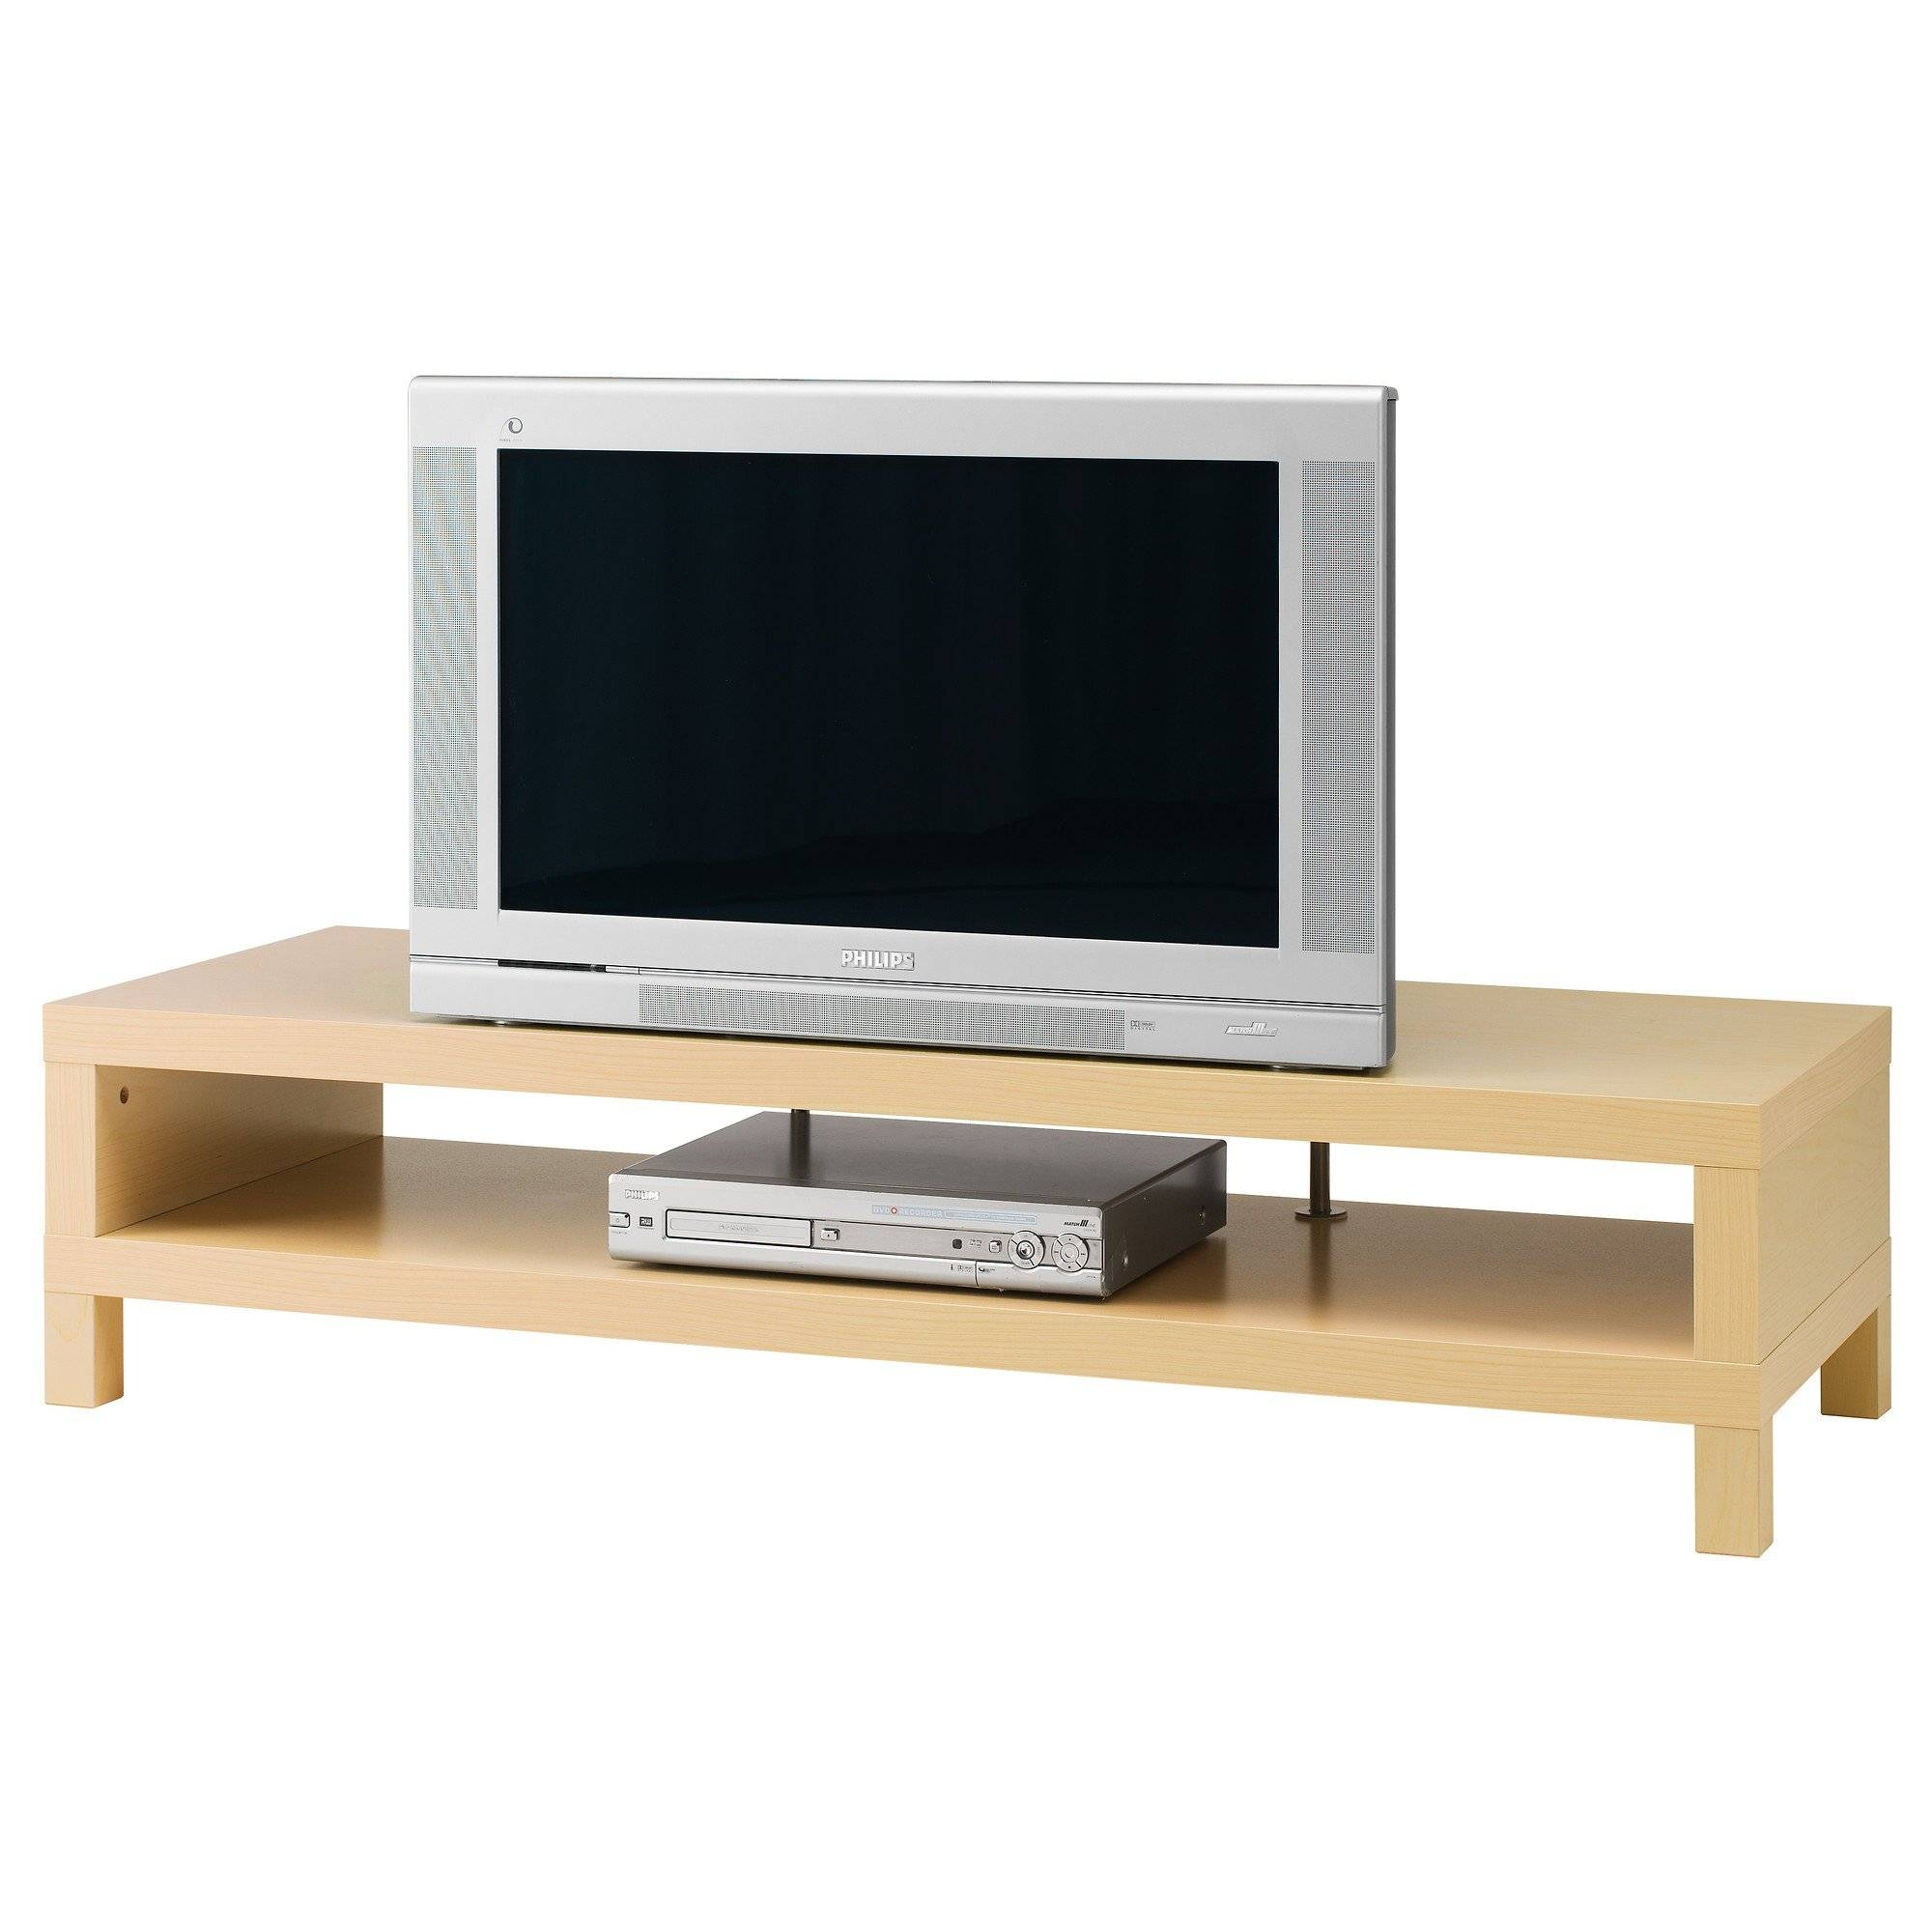 Ikea Besta Tv Stand With Rectangular Tv On Dark Brown Wooden Tv Regarding Rectangular Tv Stands (View 14 of 15)